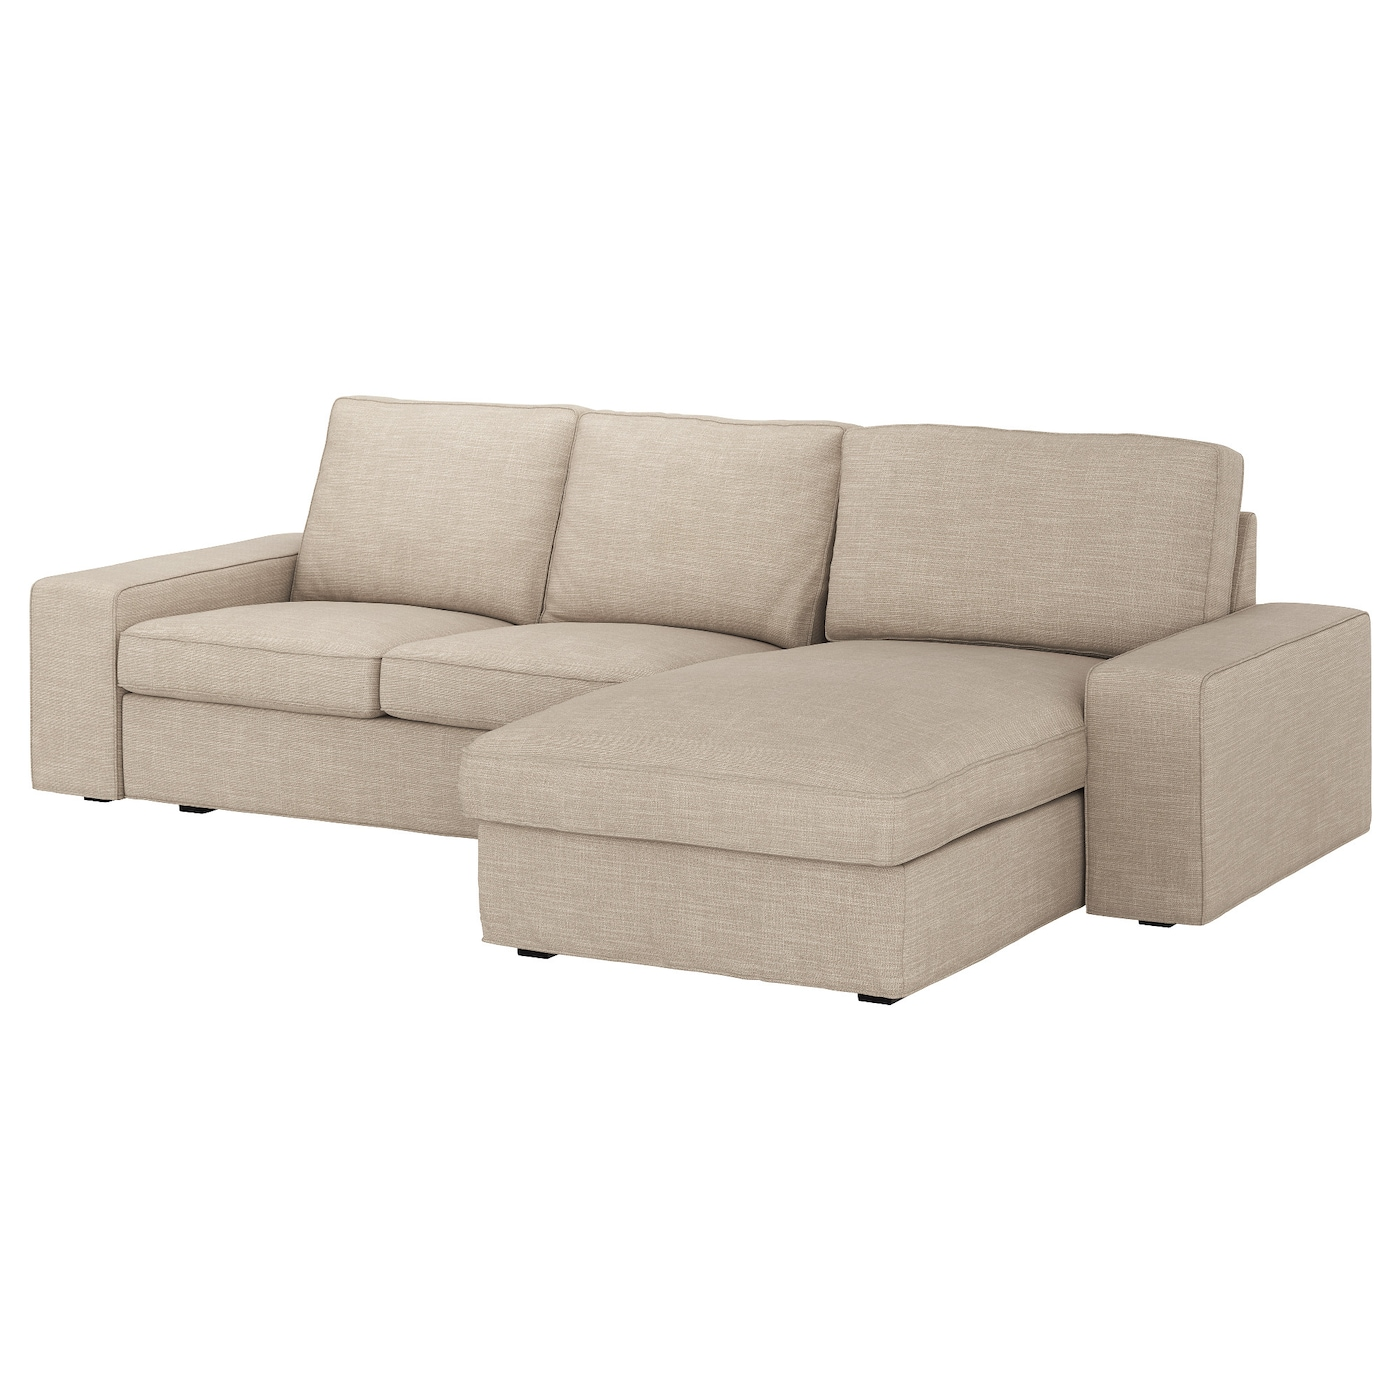 Kivik 3 seat sofa with chaise longue hillared beige ikea for Chaise longue interiores